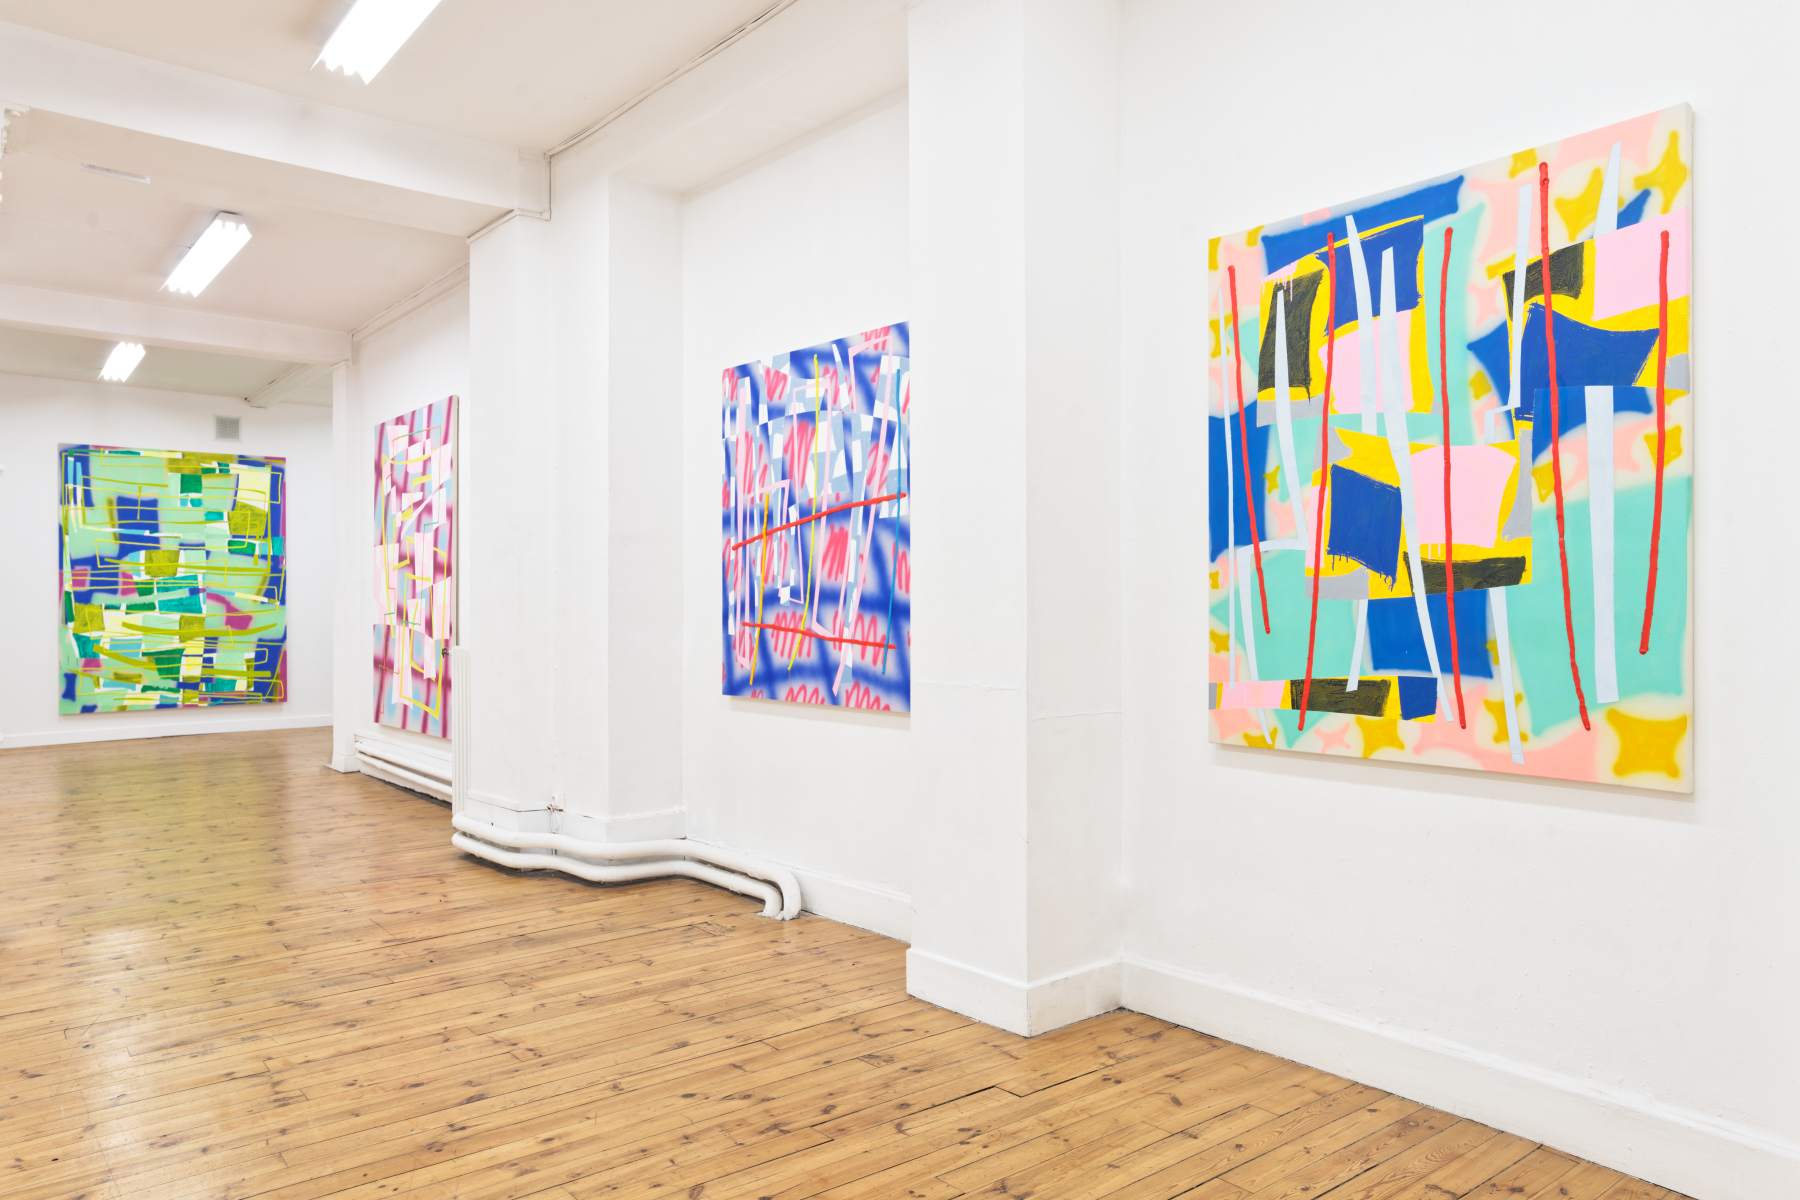 Exhibition View / Z / Z / Trudy Benson Saint-Etienne 2021